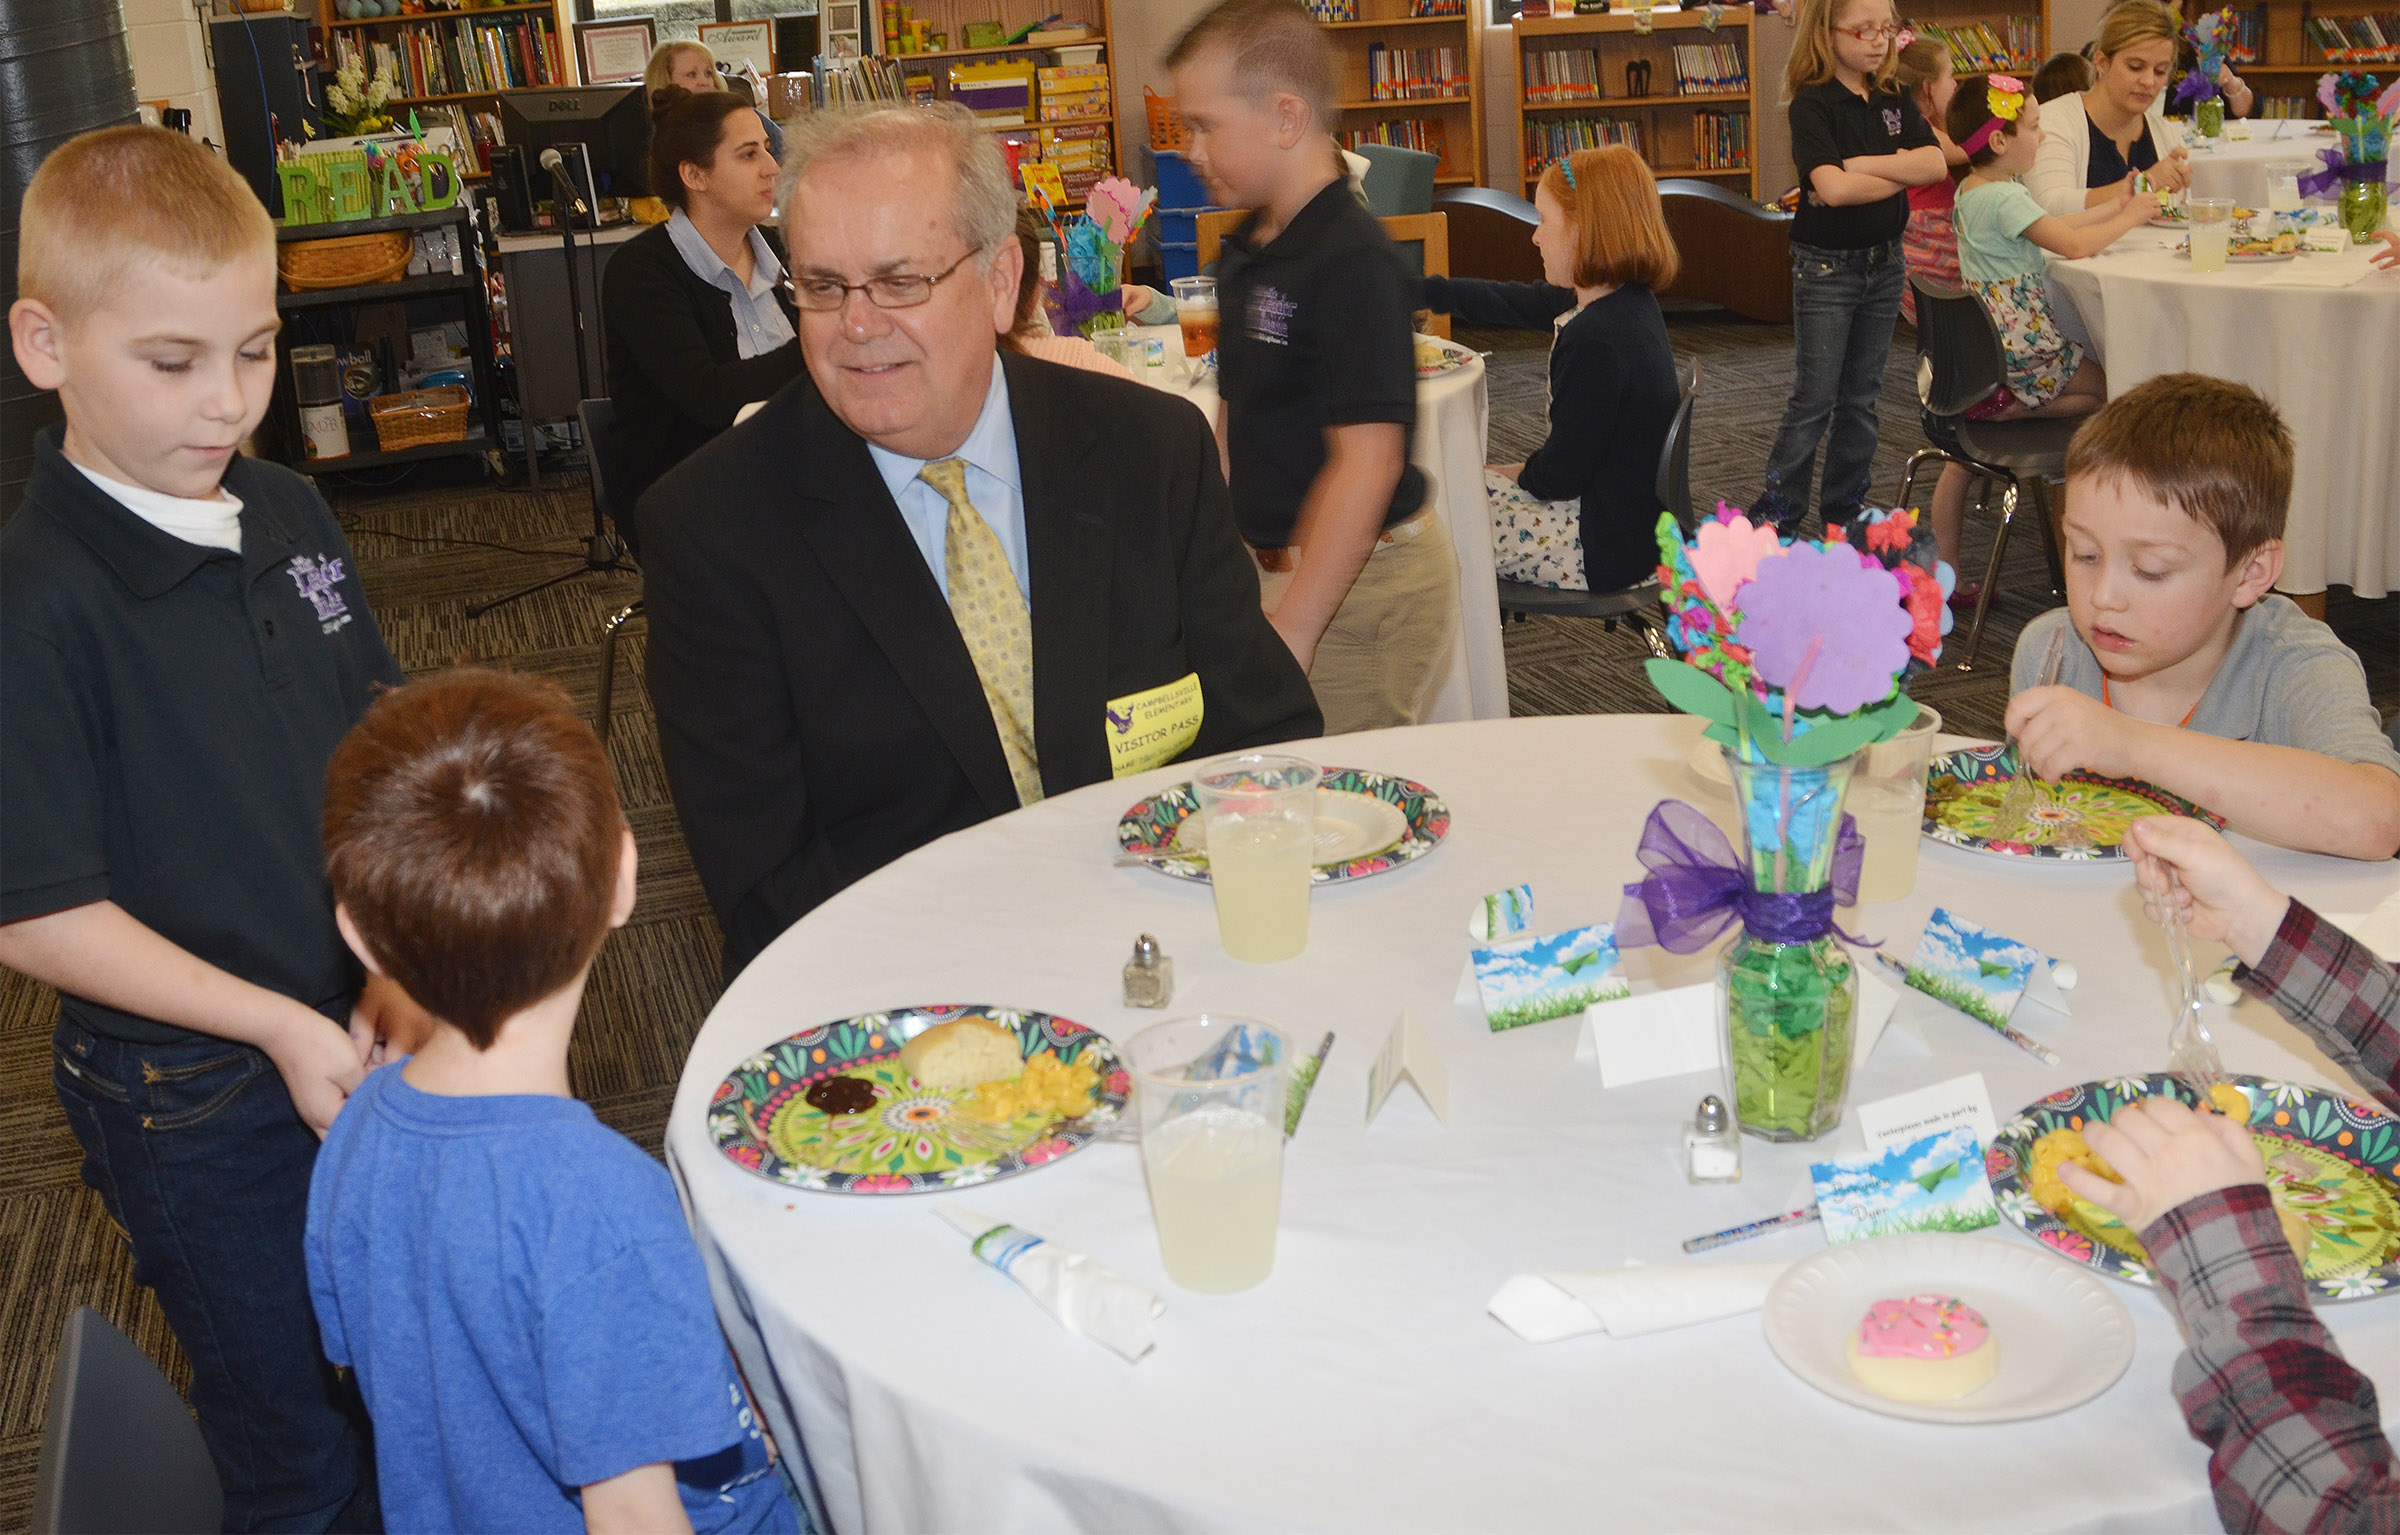 CES Lighthouse Team member Joseph Greer, a second-grader, asks kindergartener Carson Montes if he would like dessert.